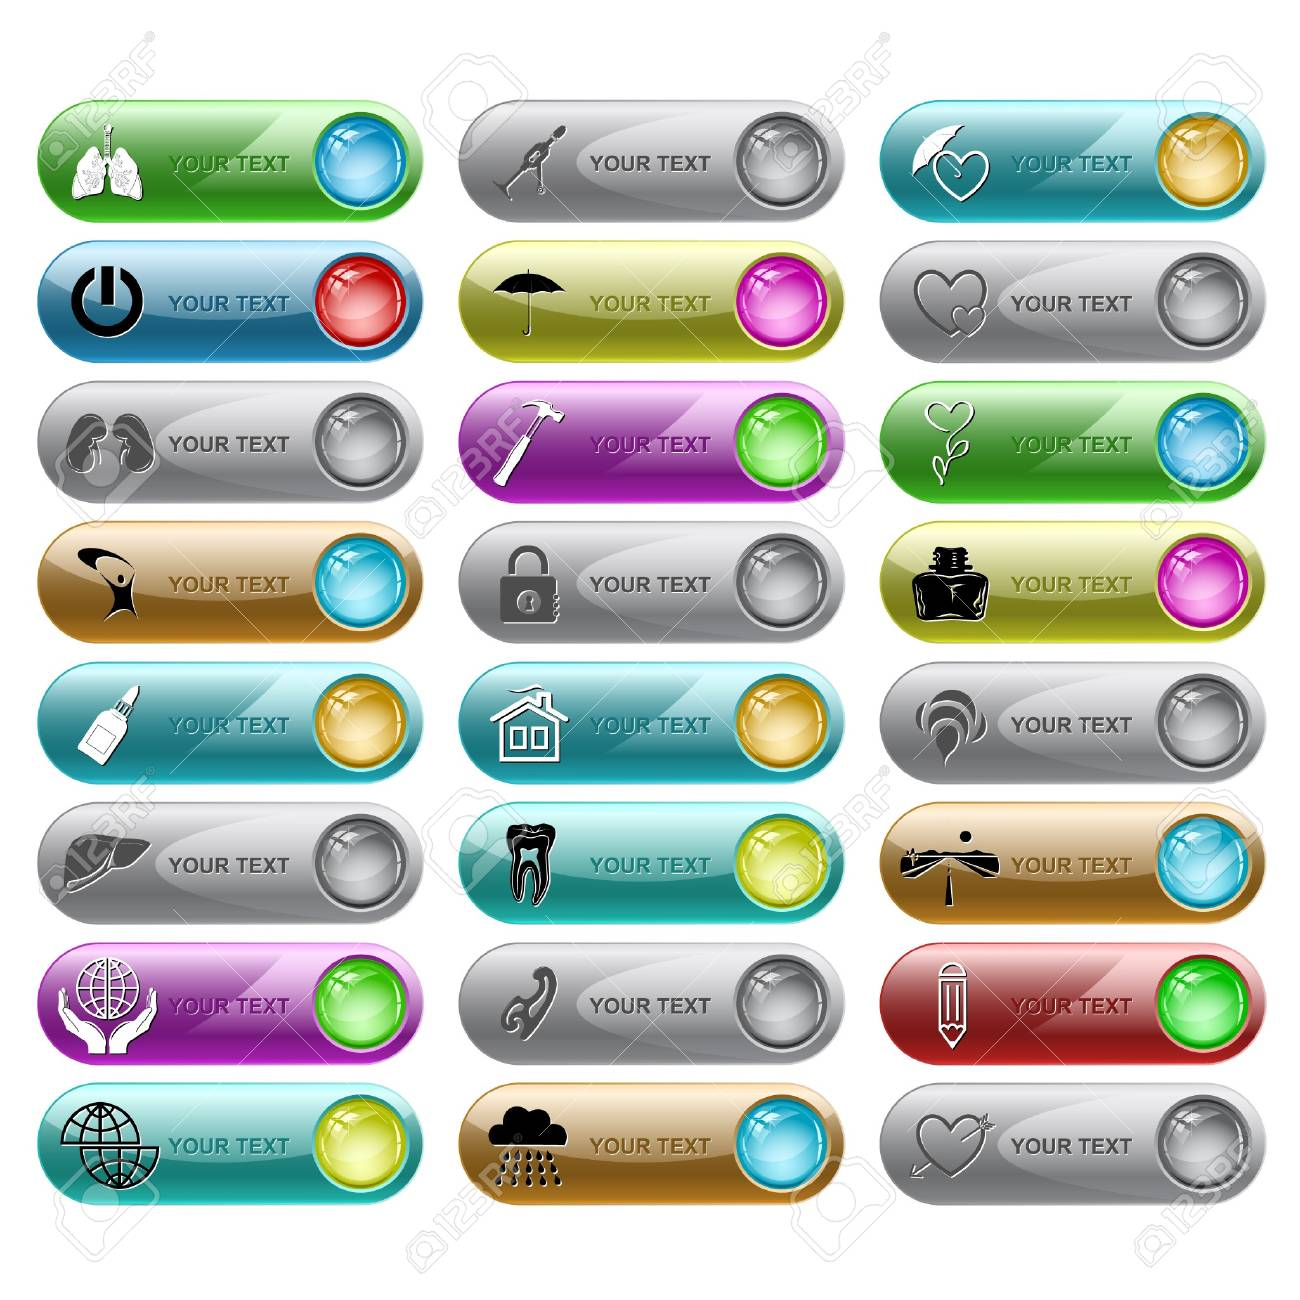 set of internet buttons. 24 elements. Stock Vector - 7602247